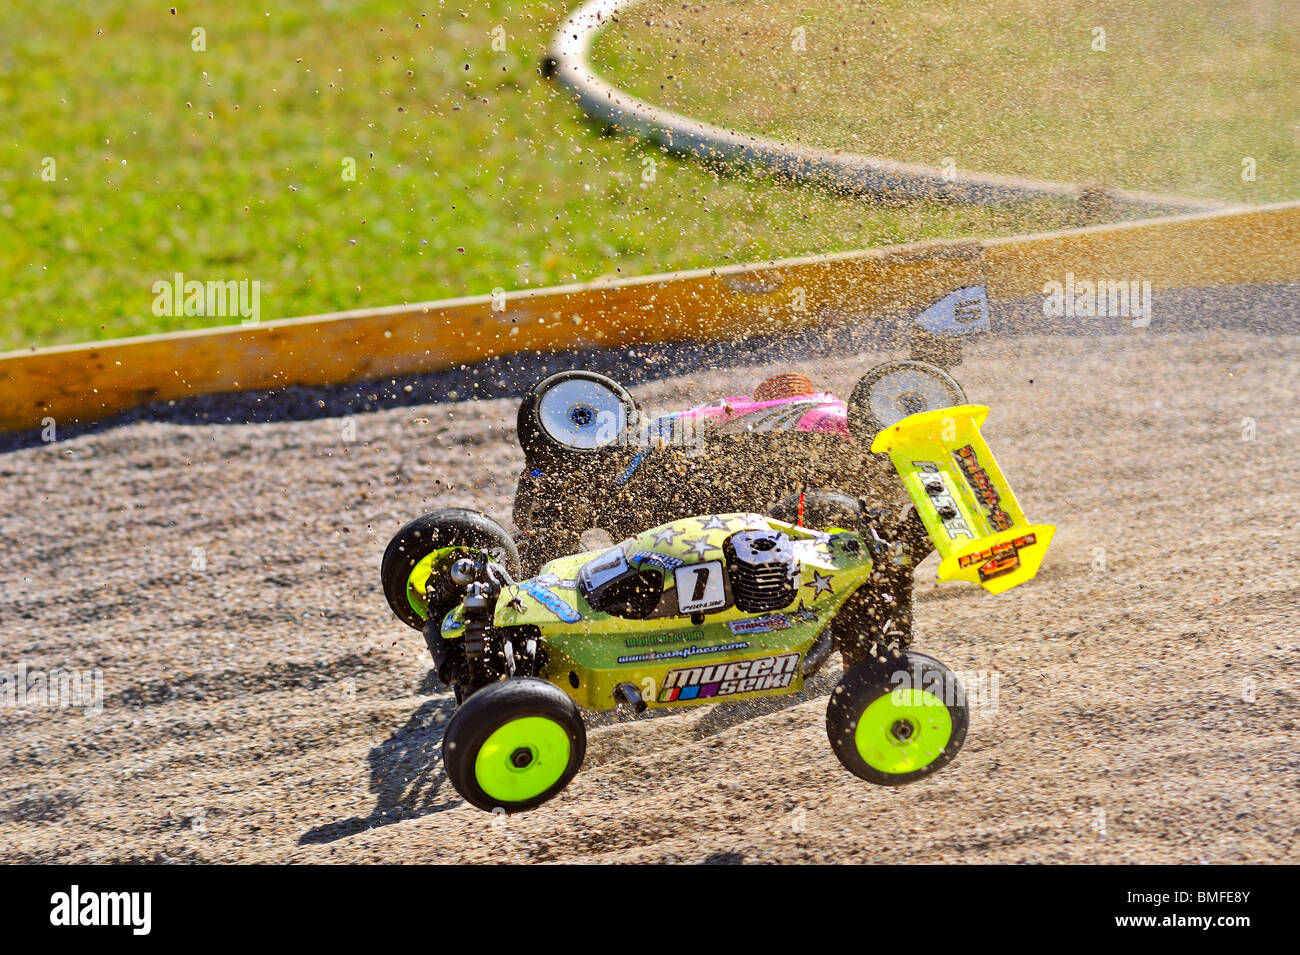 Crash. Two radio-controlled buggies collide as they race, dirt flying - Stock Image